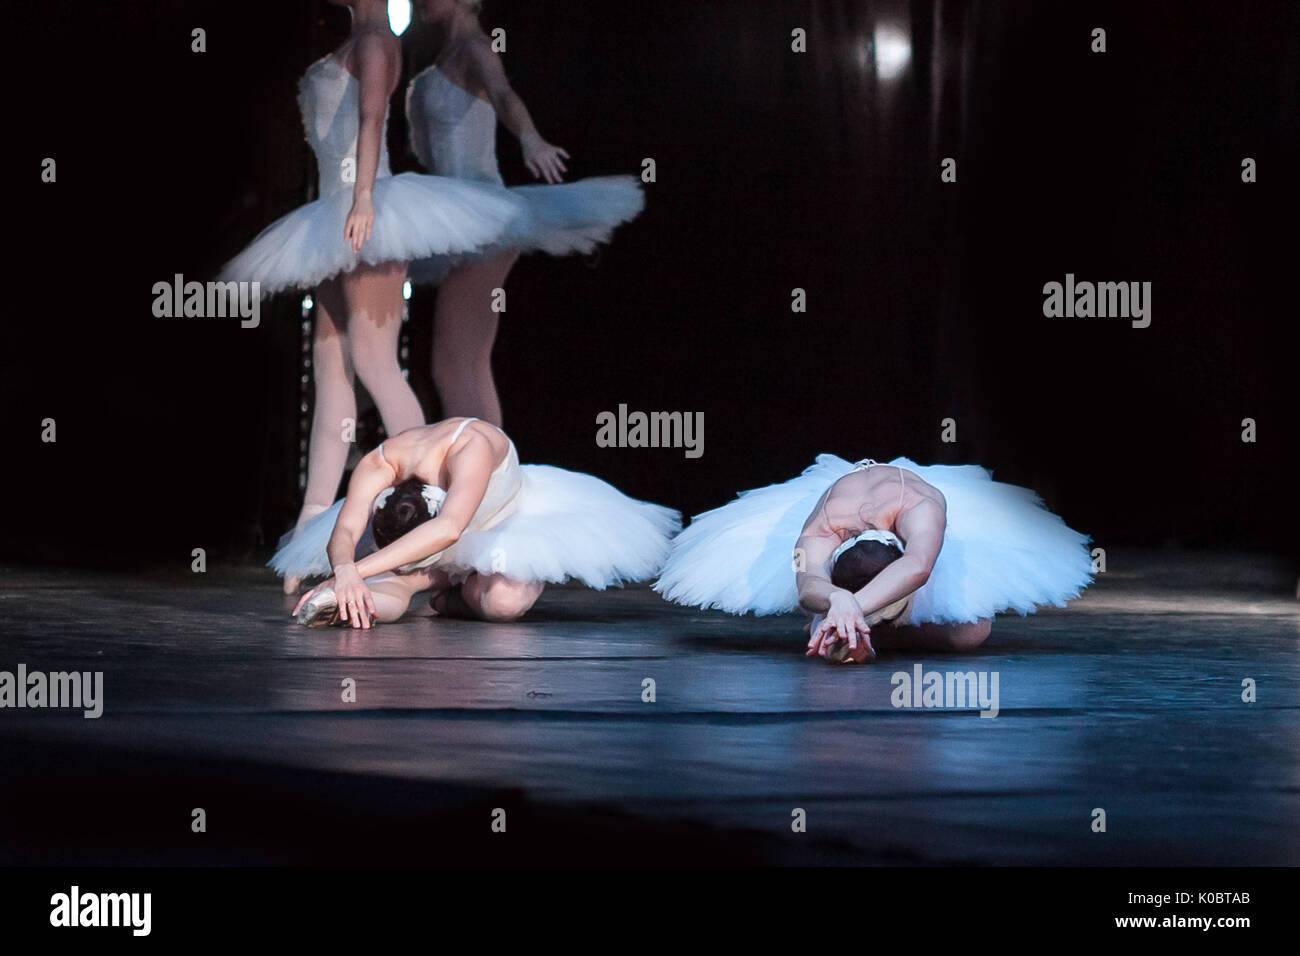 dancing, agility, beauty concept. thin and adorable female ballet dancers dressed in shiny white tutus and leotards, they are lying on the stage of the theater with their arms folded - Stock Image